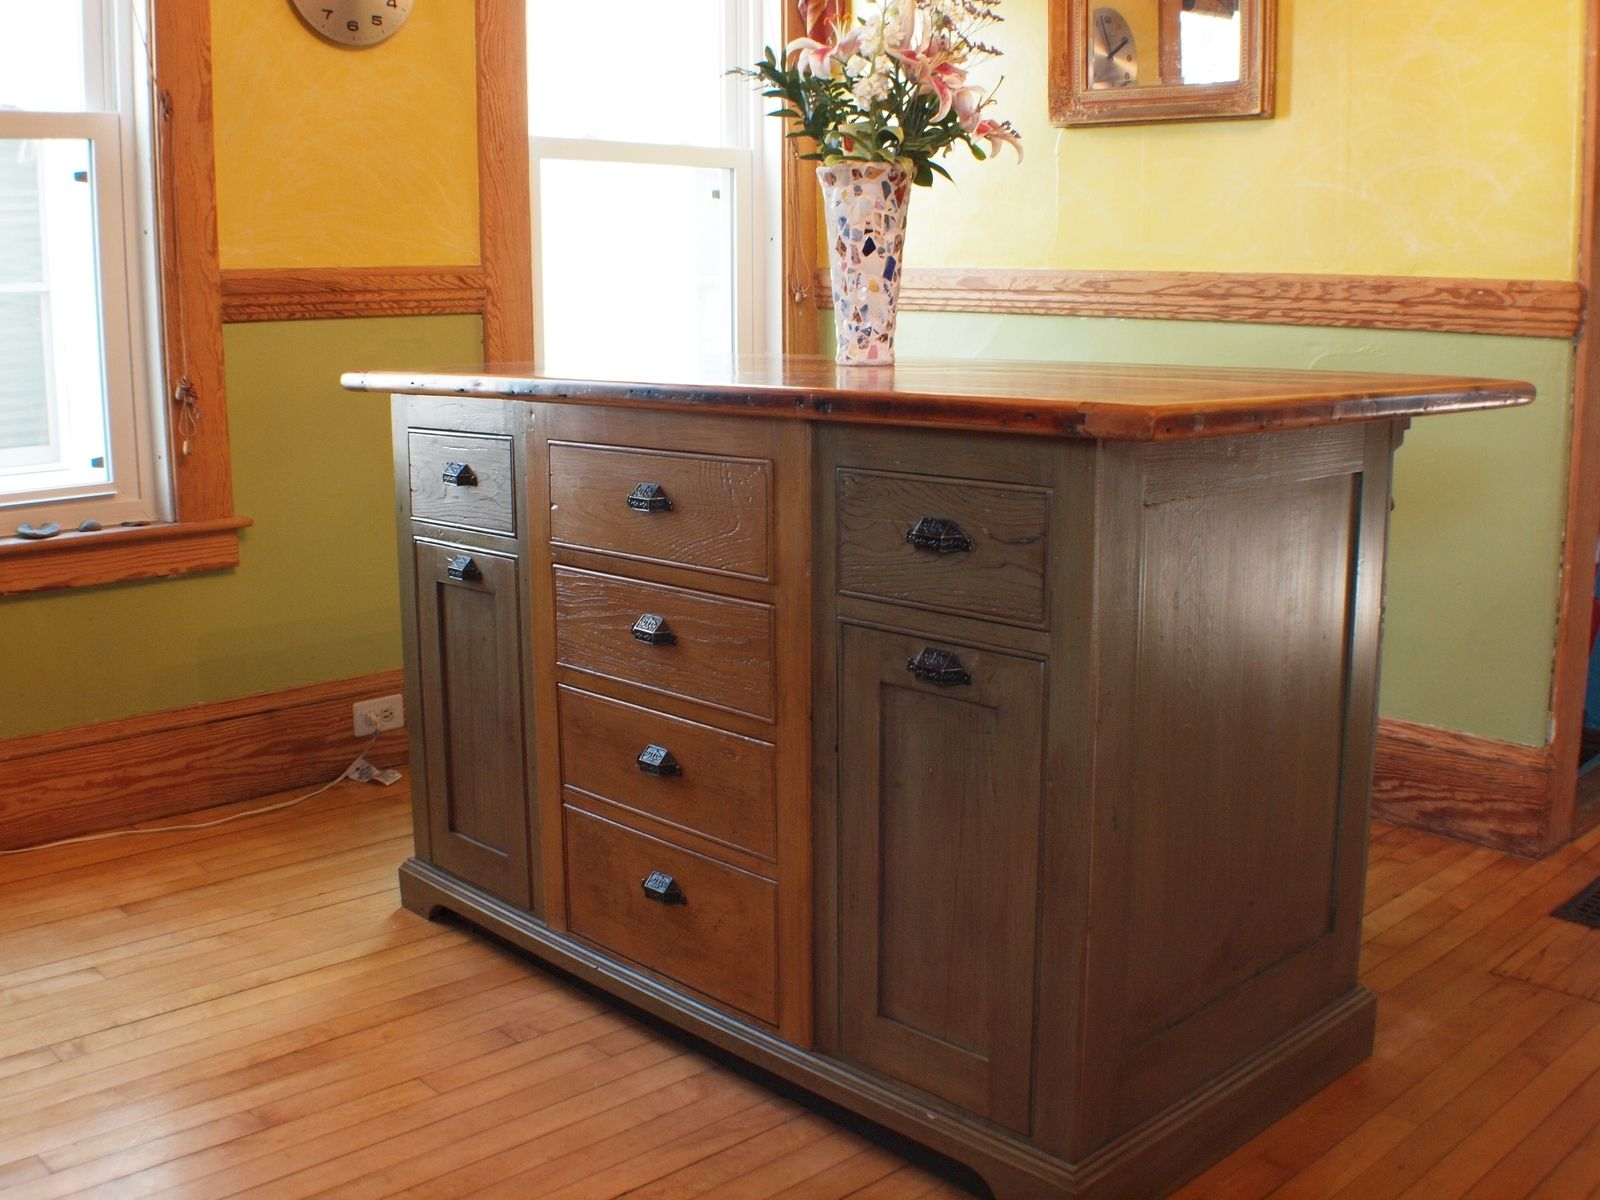 Repurposed Kitchen Island Handmade Rustic Kitchen Island With Wood Top By Rustique Llc